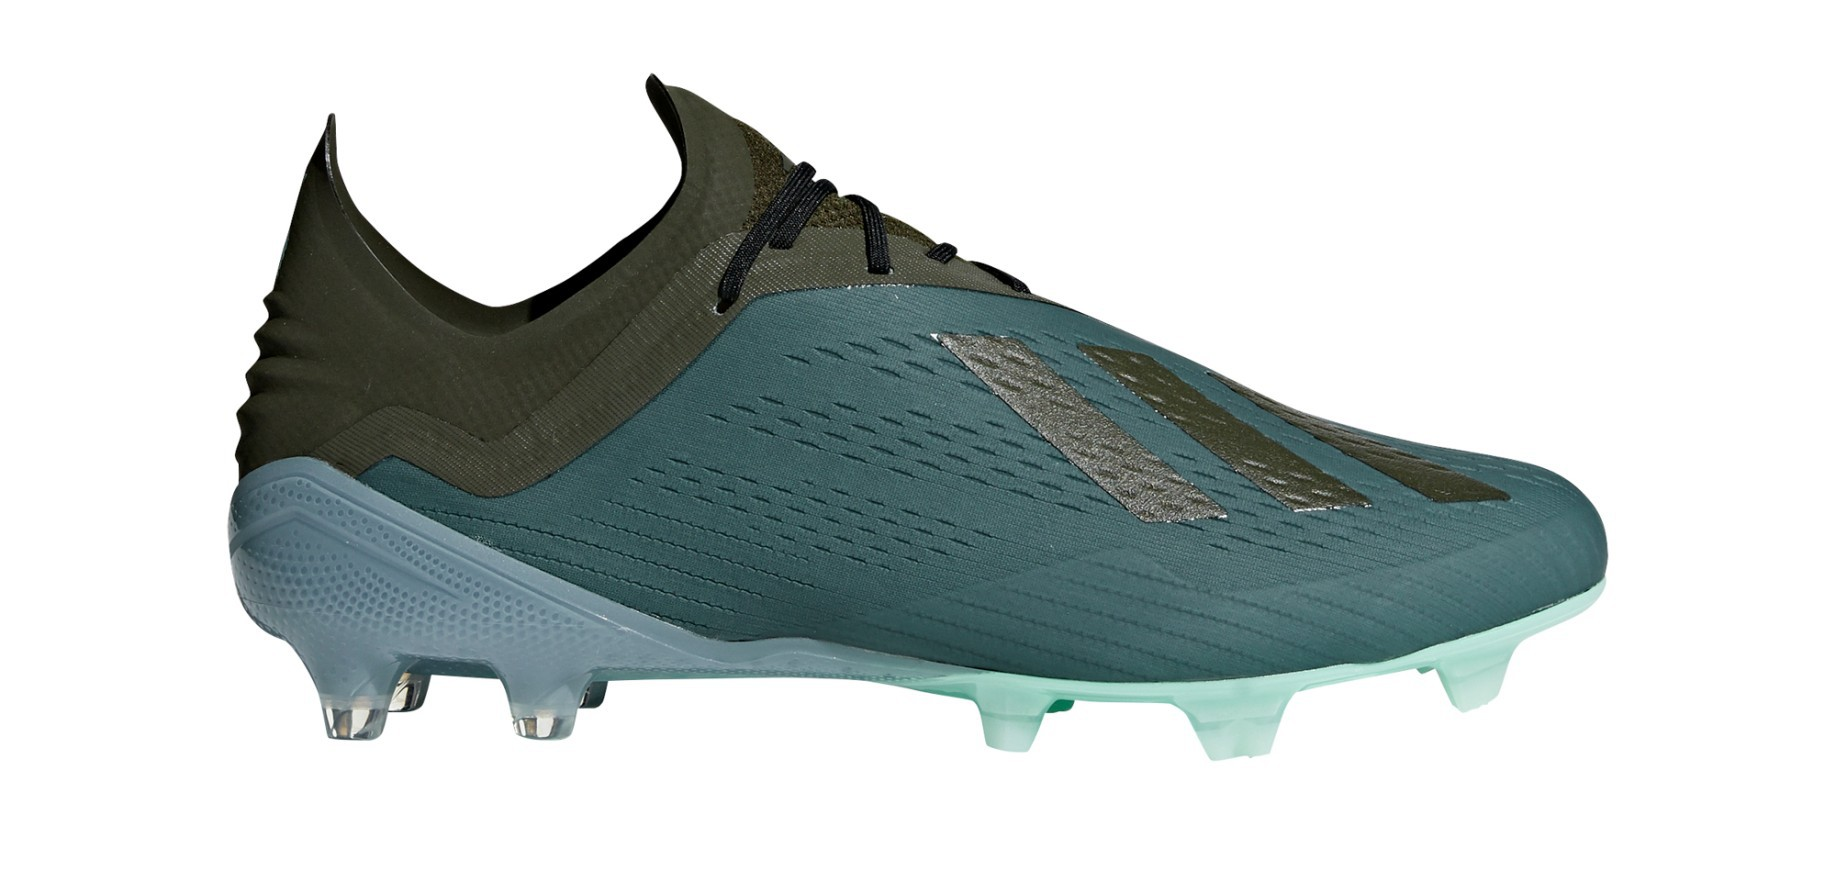 outlet store 1fae4 b08d1 Football boots Adidas X 18.1 FG Cold Mode Pack colore Green Black - Adidas  - SportIT.com